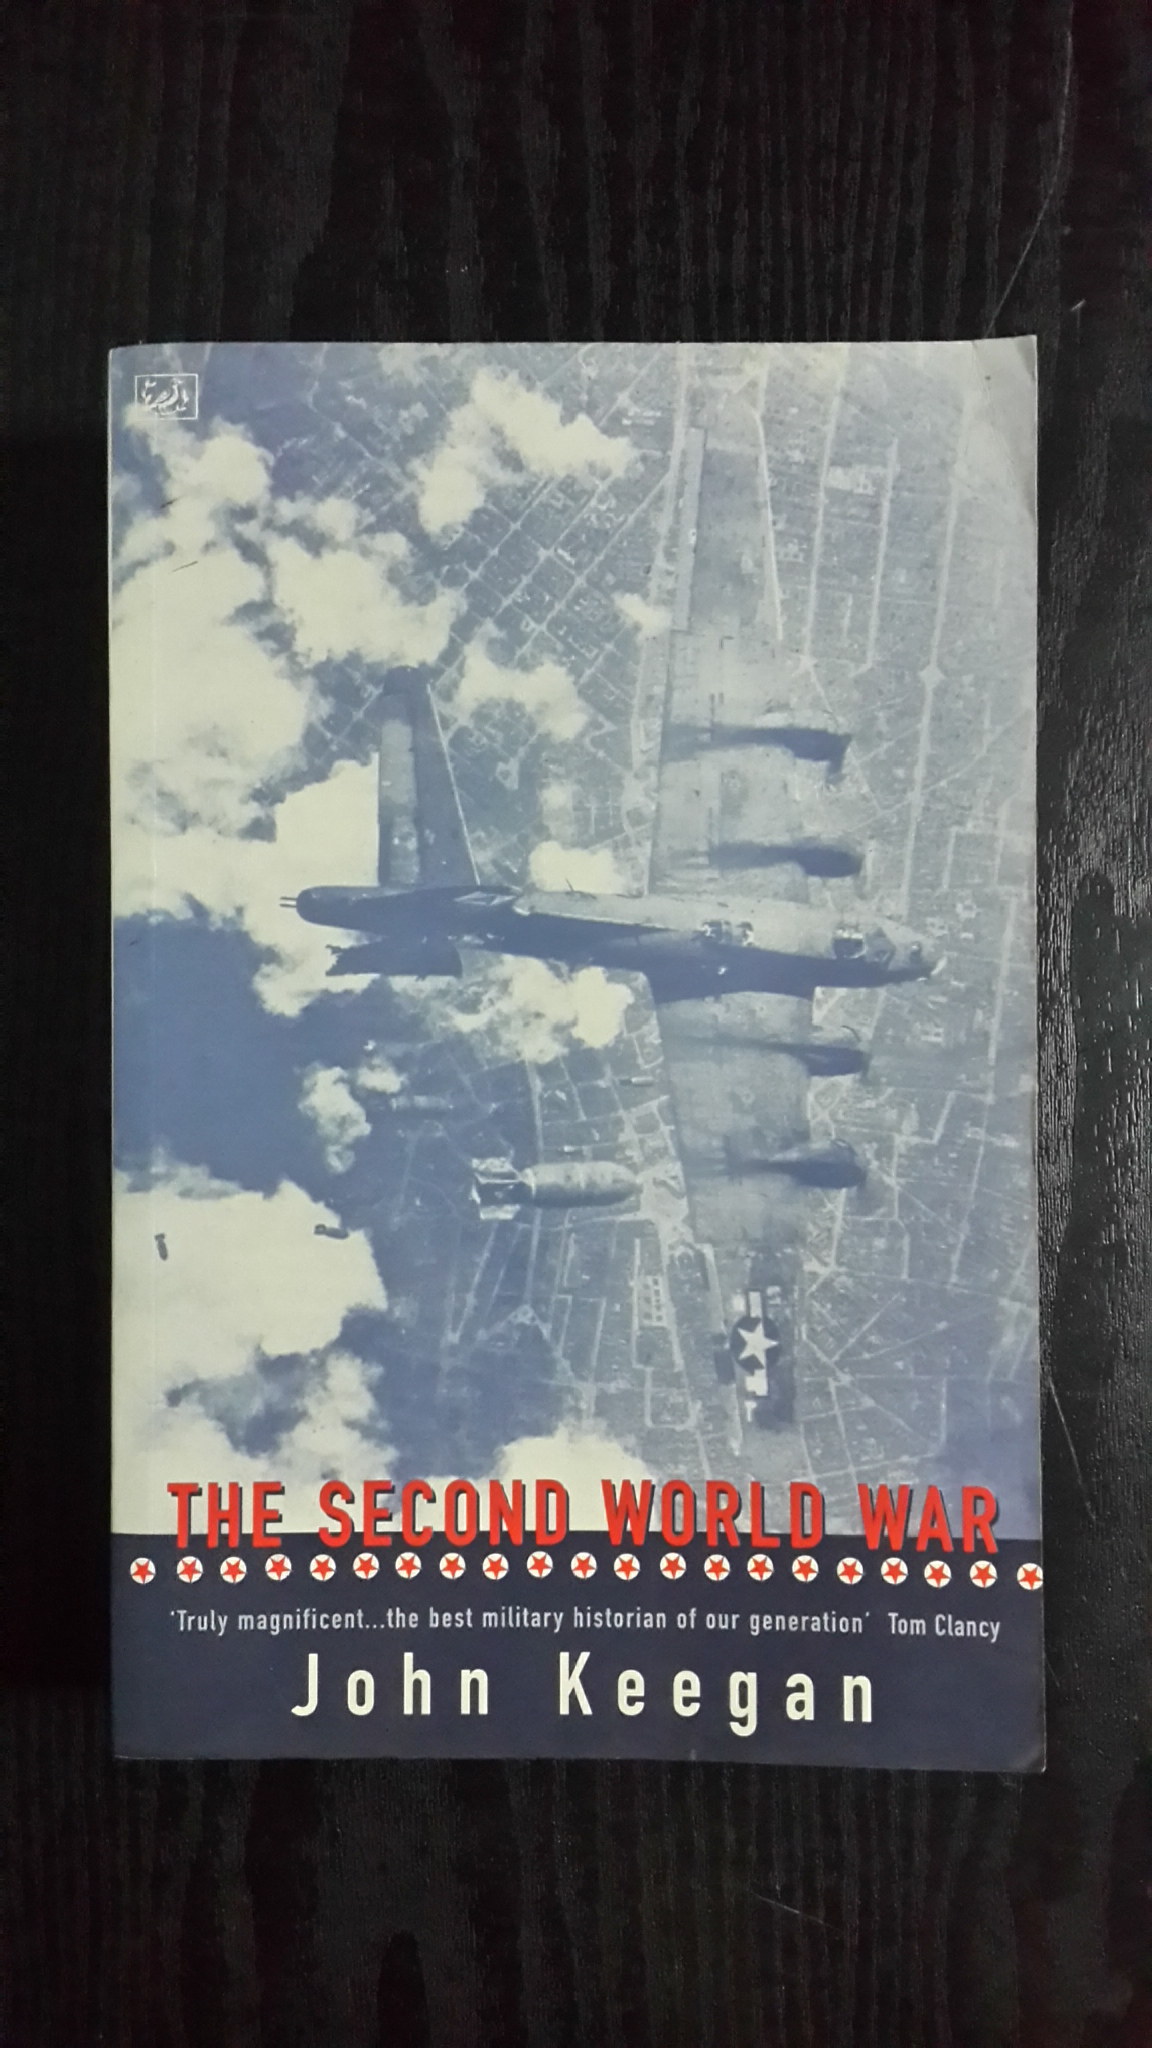 THE SECOND WORLD WAR / JOHN KEEGAN